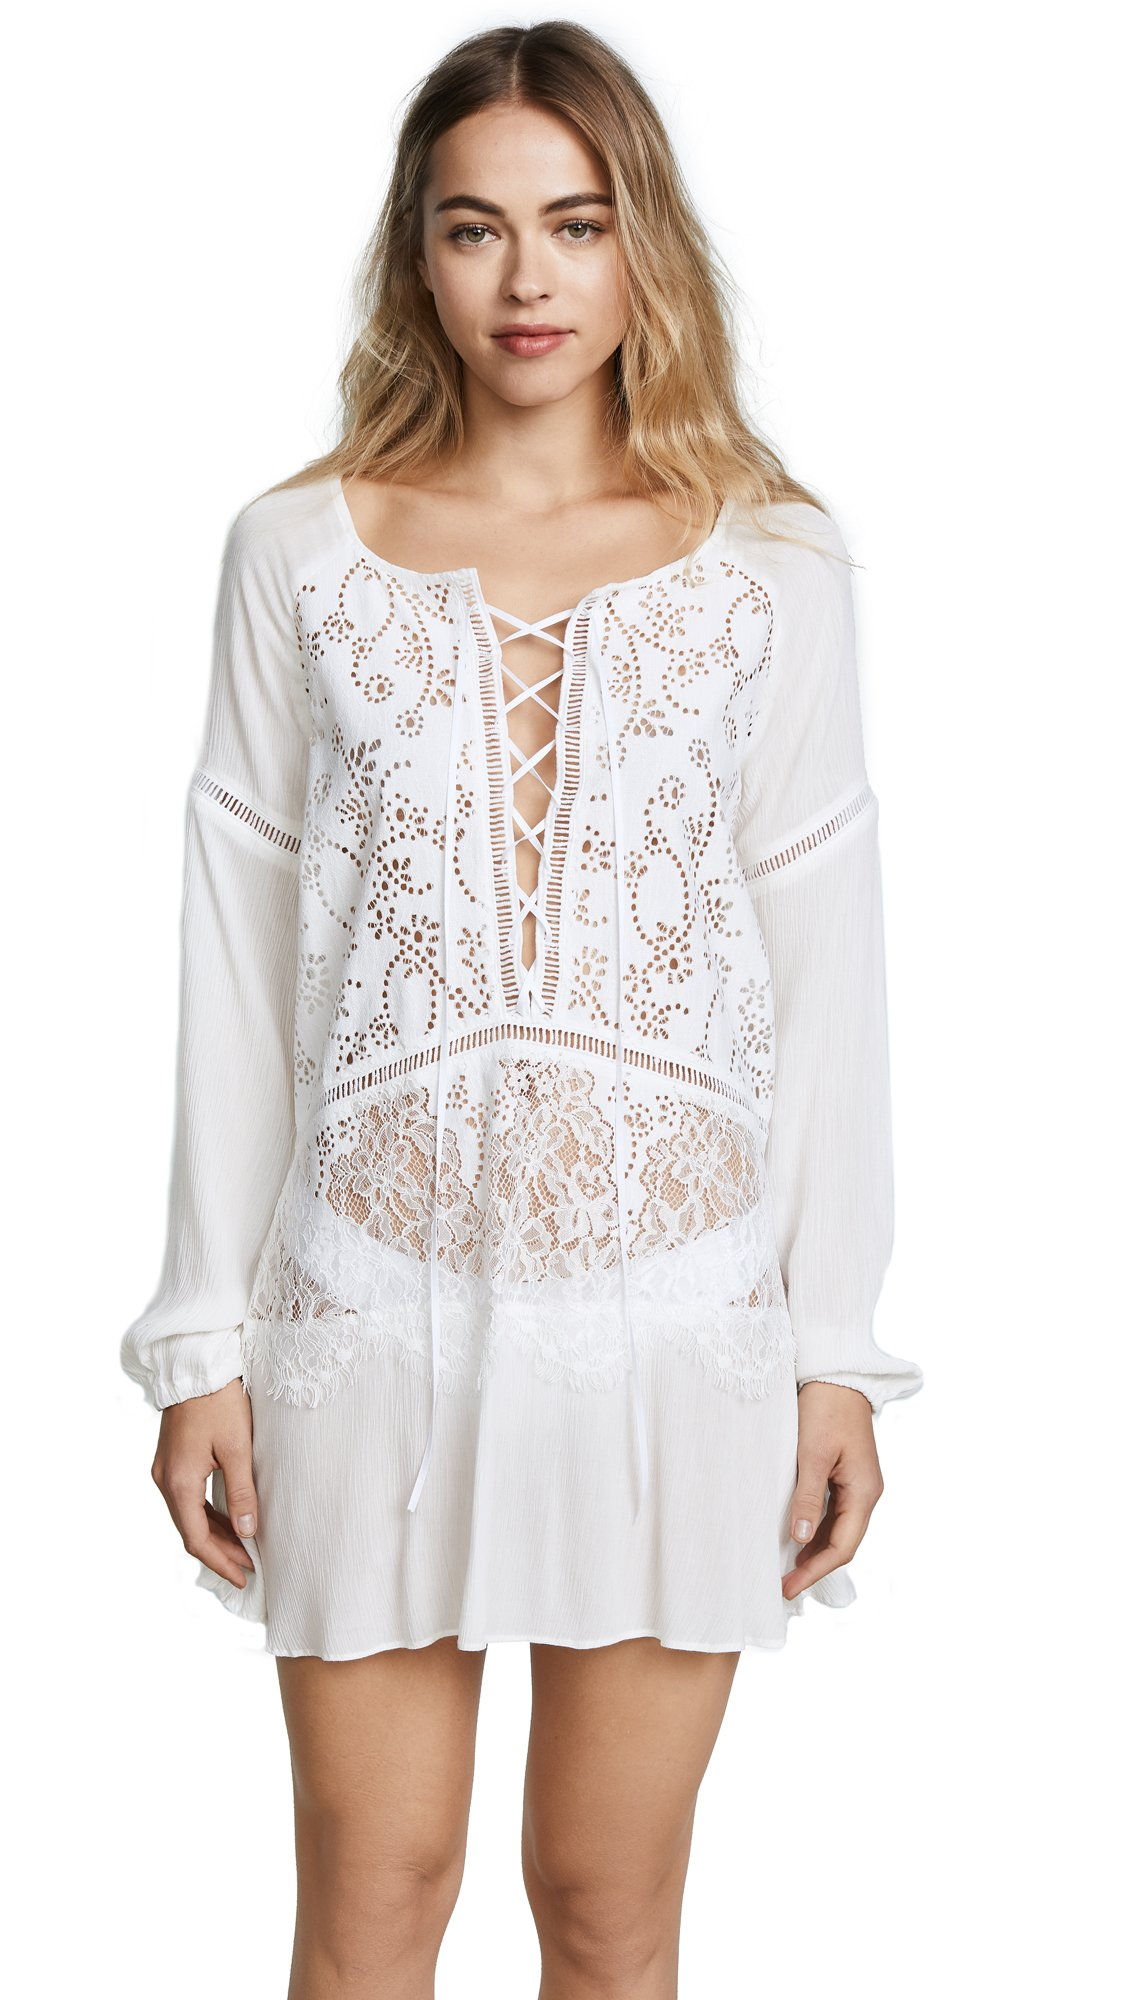 For Love & Lemons Women's Olympia Lace Cover Up Tunic, White, Small